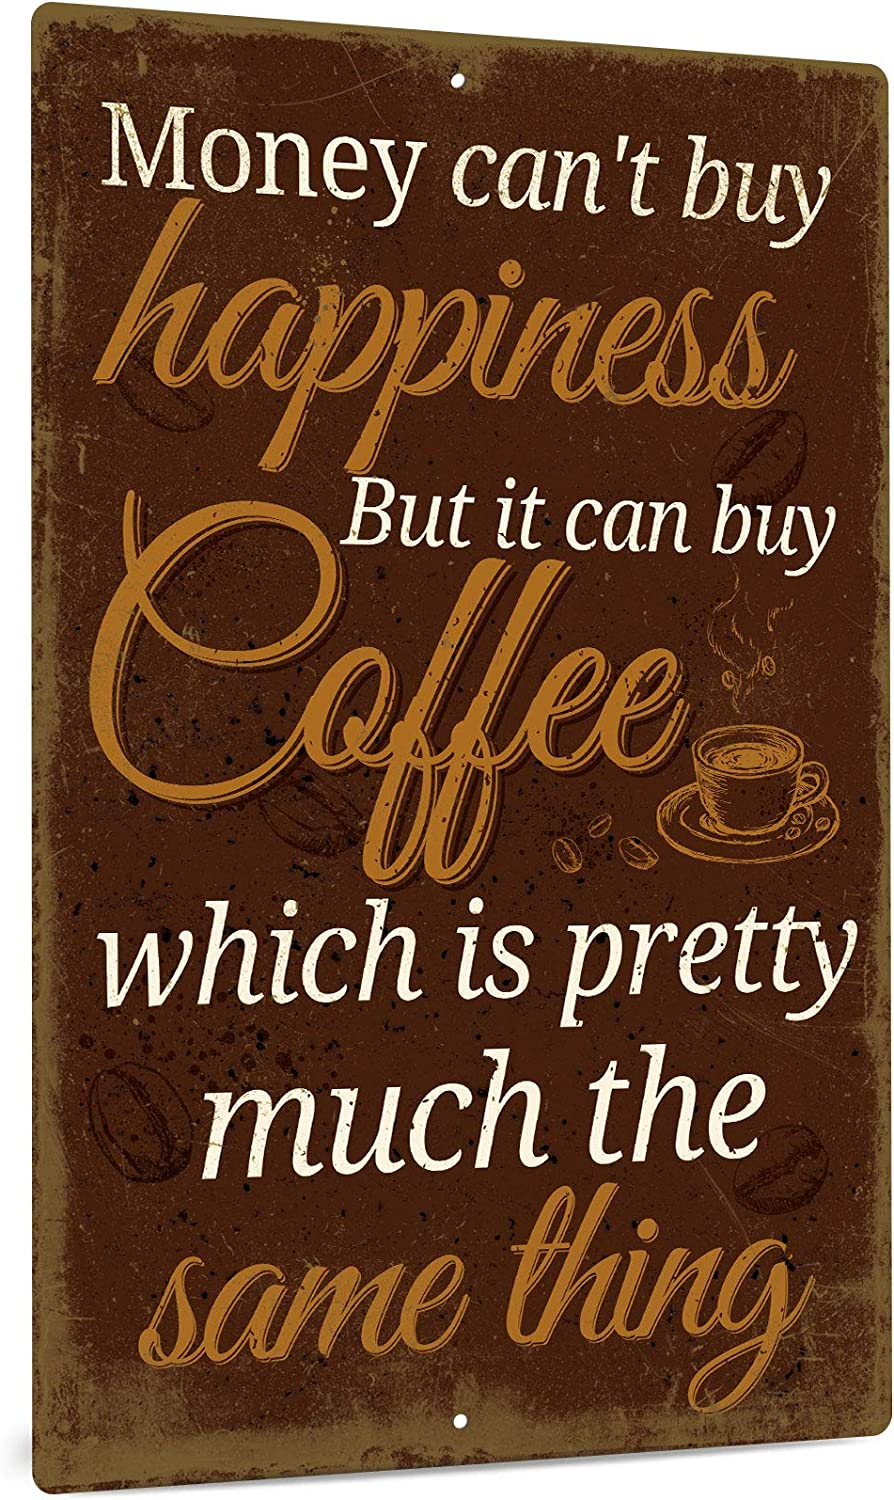 Putuo Decor Metal Wall Sign, 12x8 Inches Vintage Funny Aluminum Home Decor for Bars, Restaurants, Cafes Pubs, Kitchen, Home Coffee Station - Money Can't Buy Happiness But It Can Buy Coffee